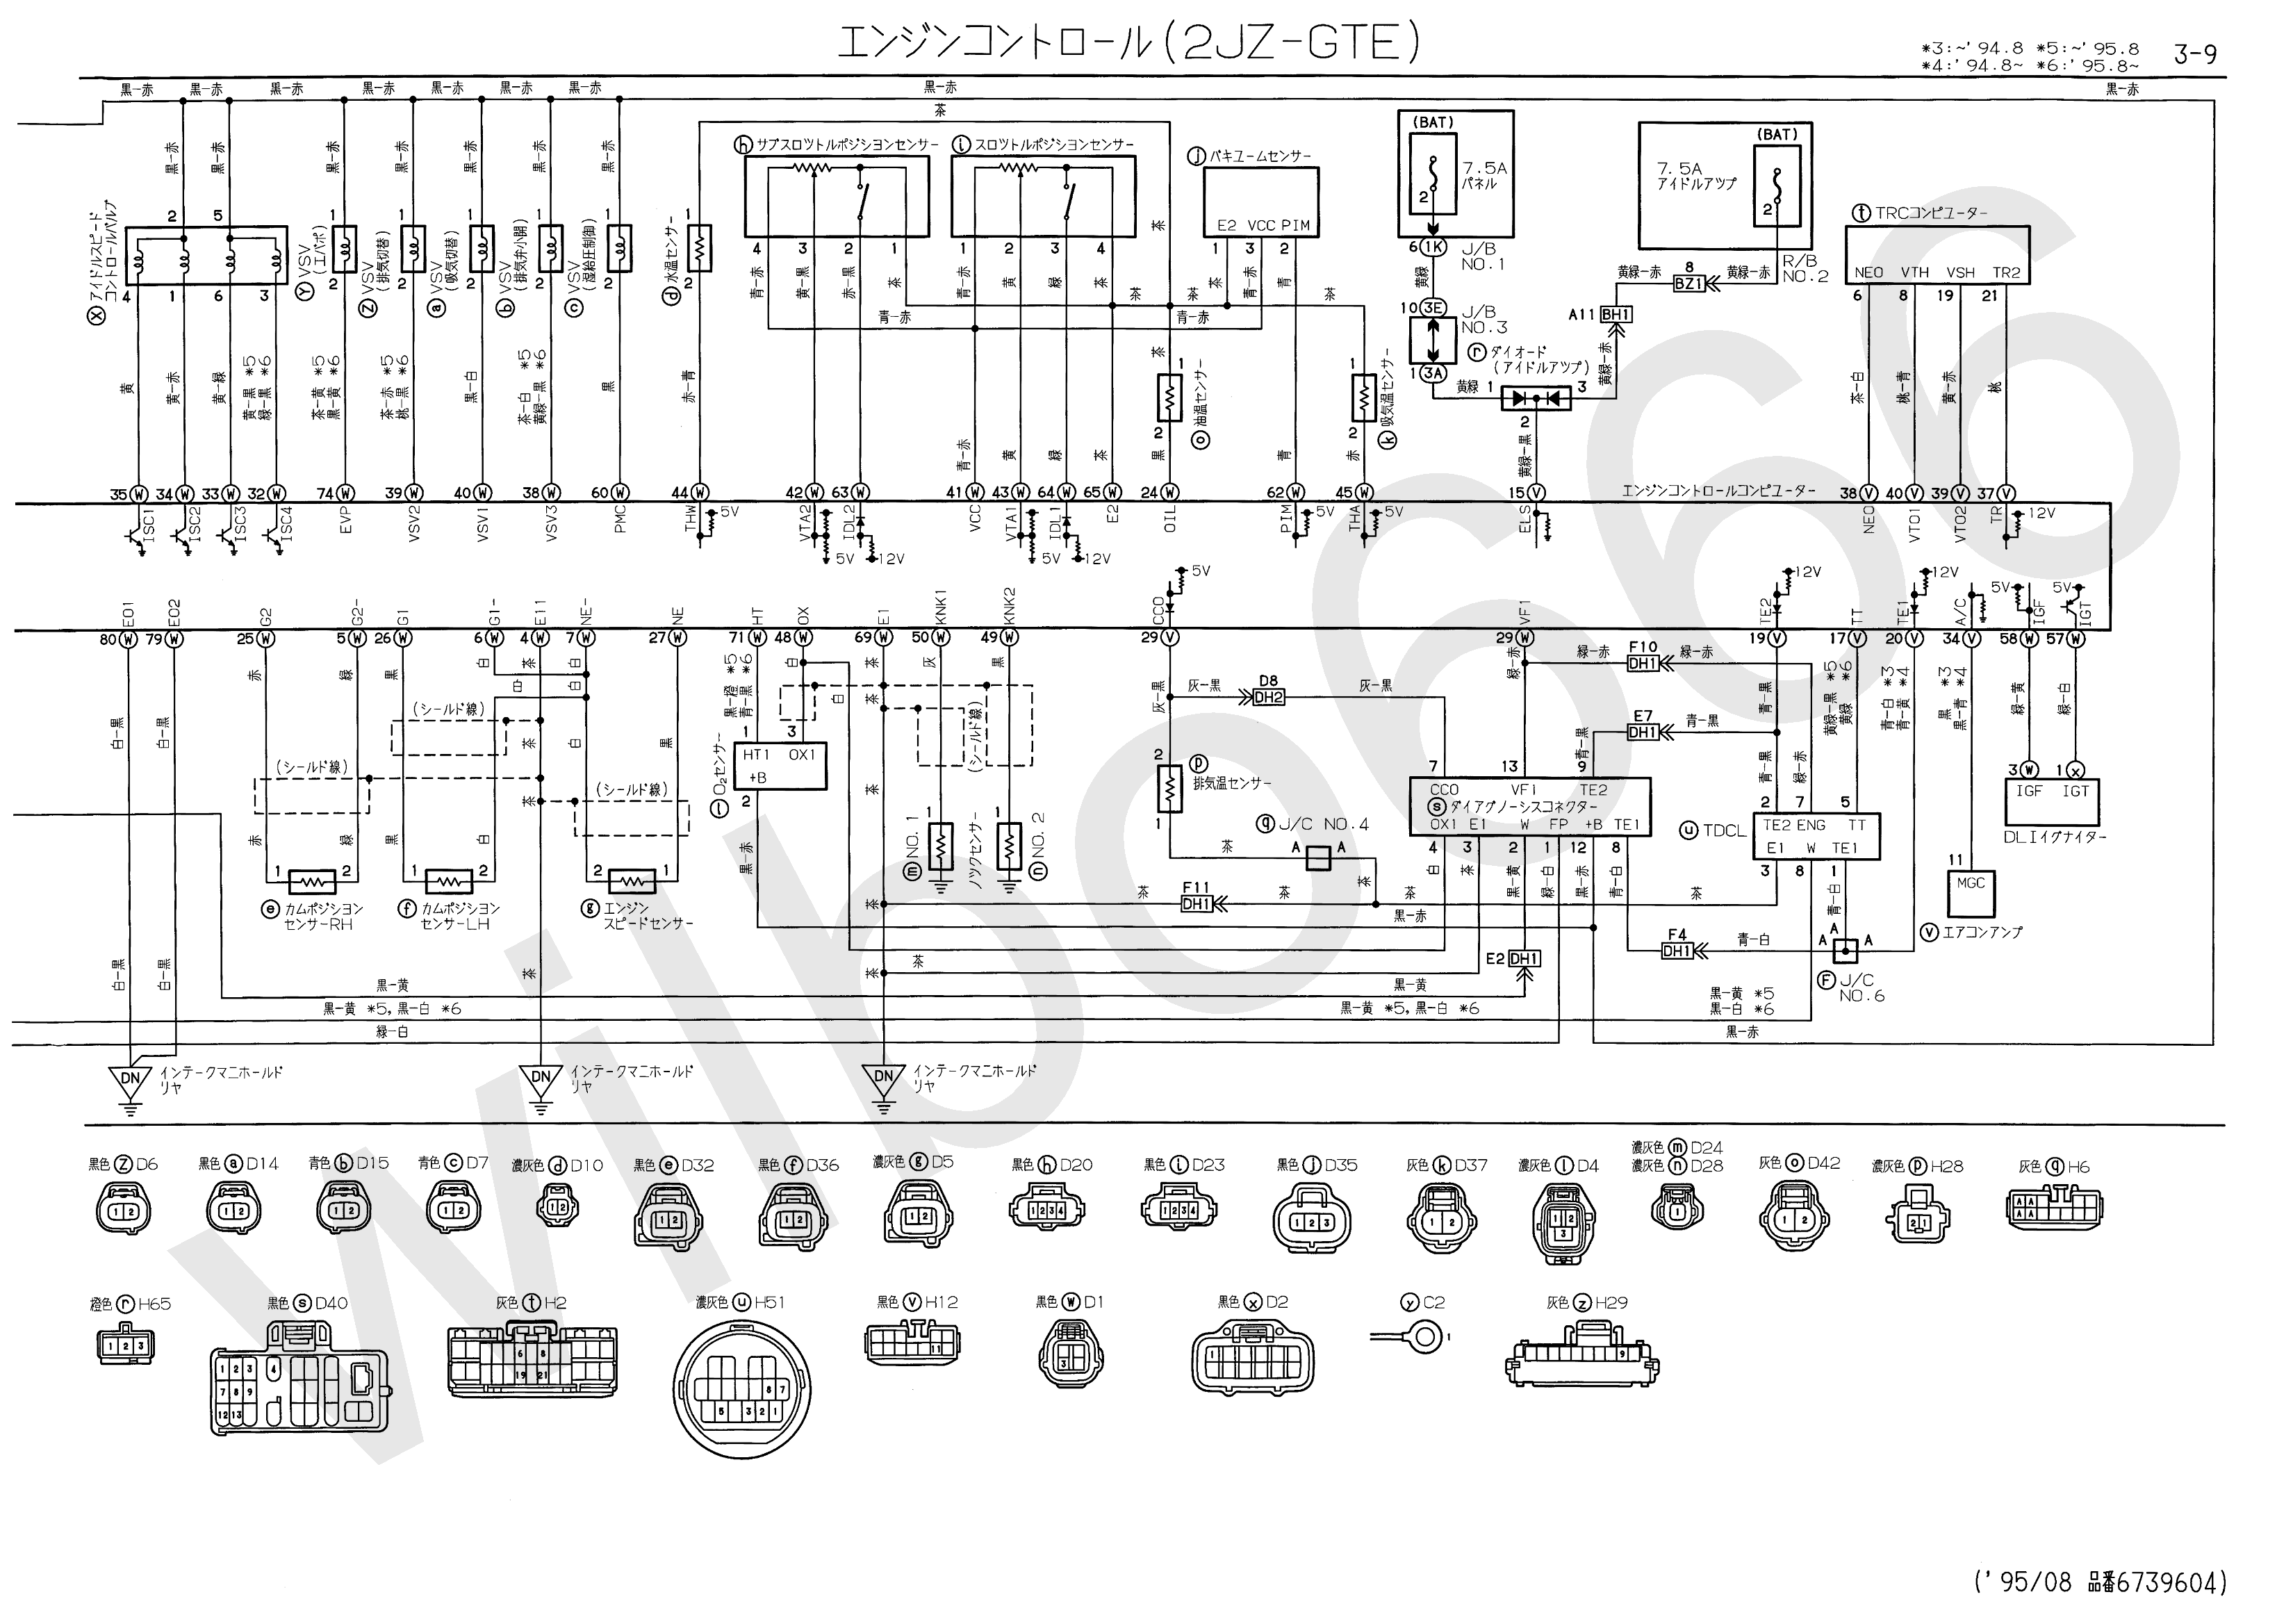 Wilbo666 2jz Gte Jzs147 Aristo Engine Wiring Universal Cd Player Diagram Toyota Diagrams